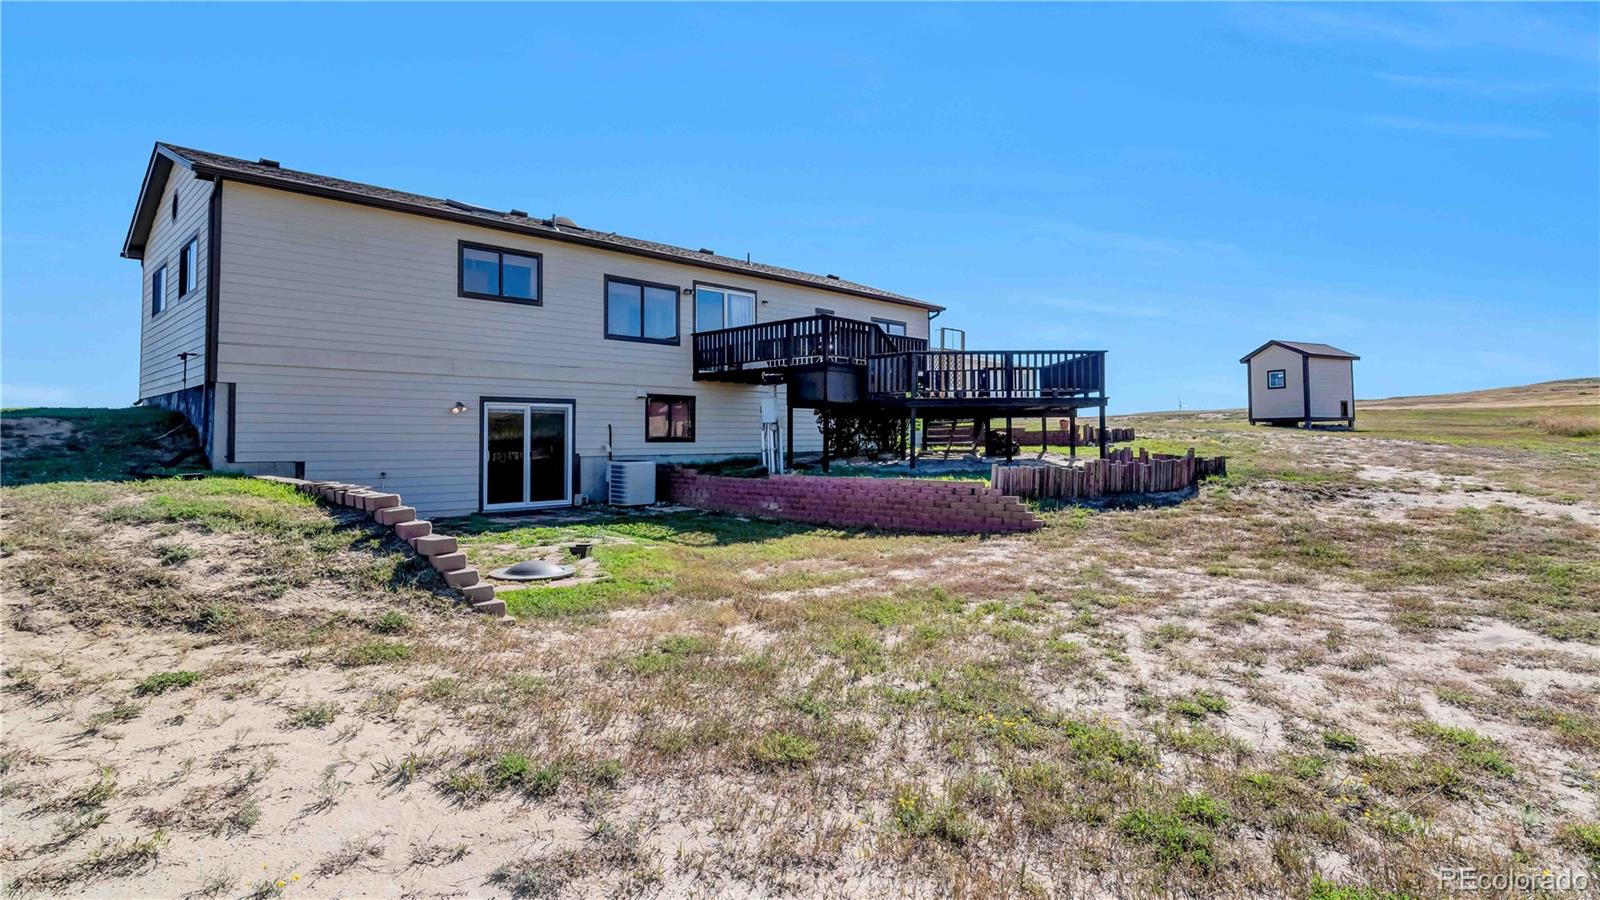 29675 Paint Mine Road, Calhan, CO 80808 - Calhan, CO real estate listing